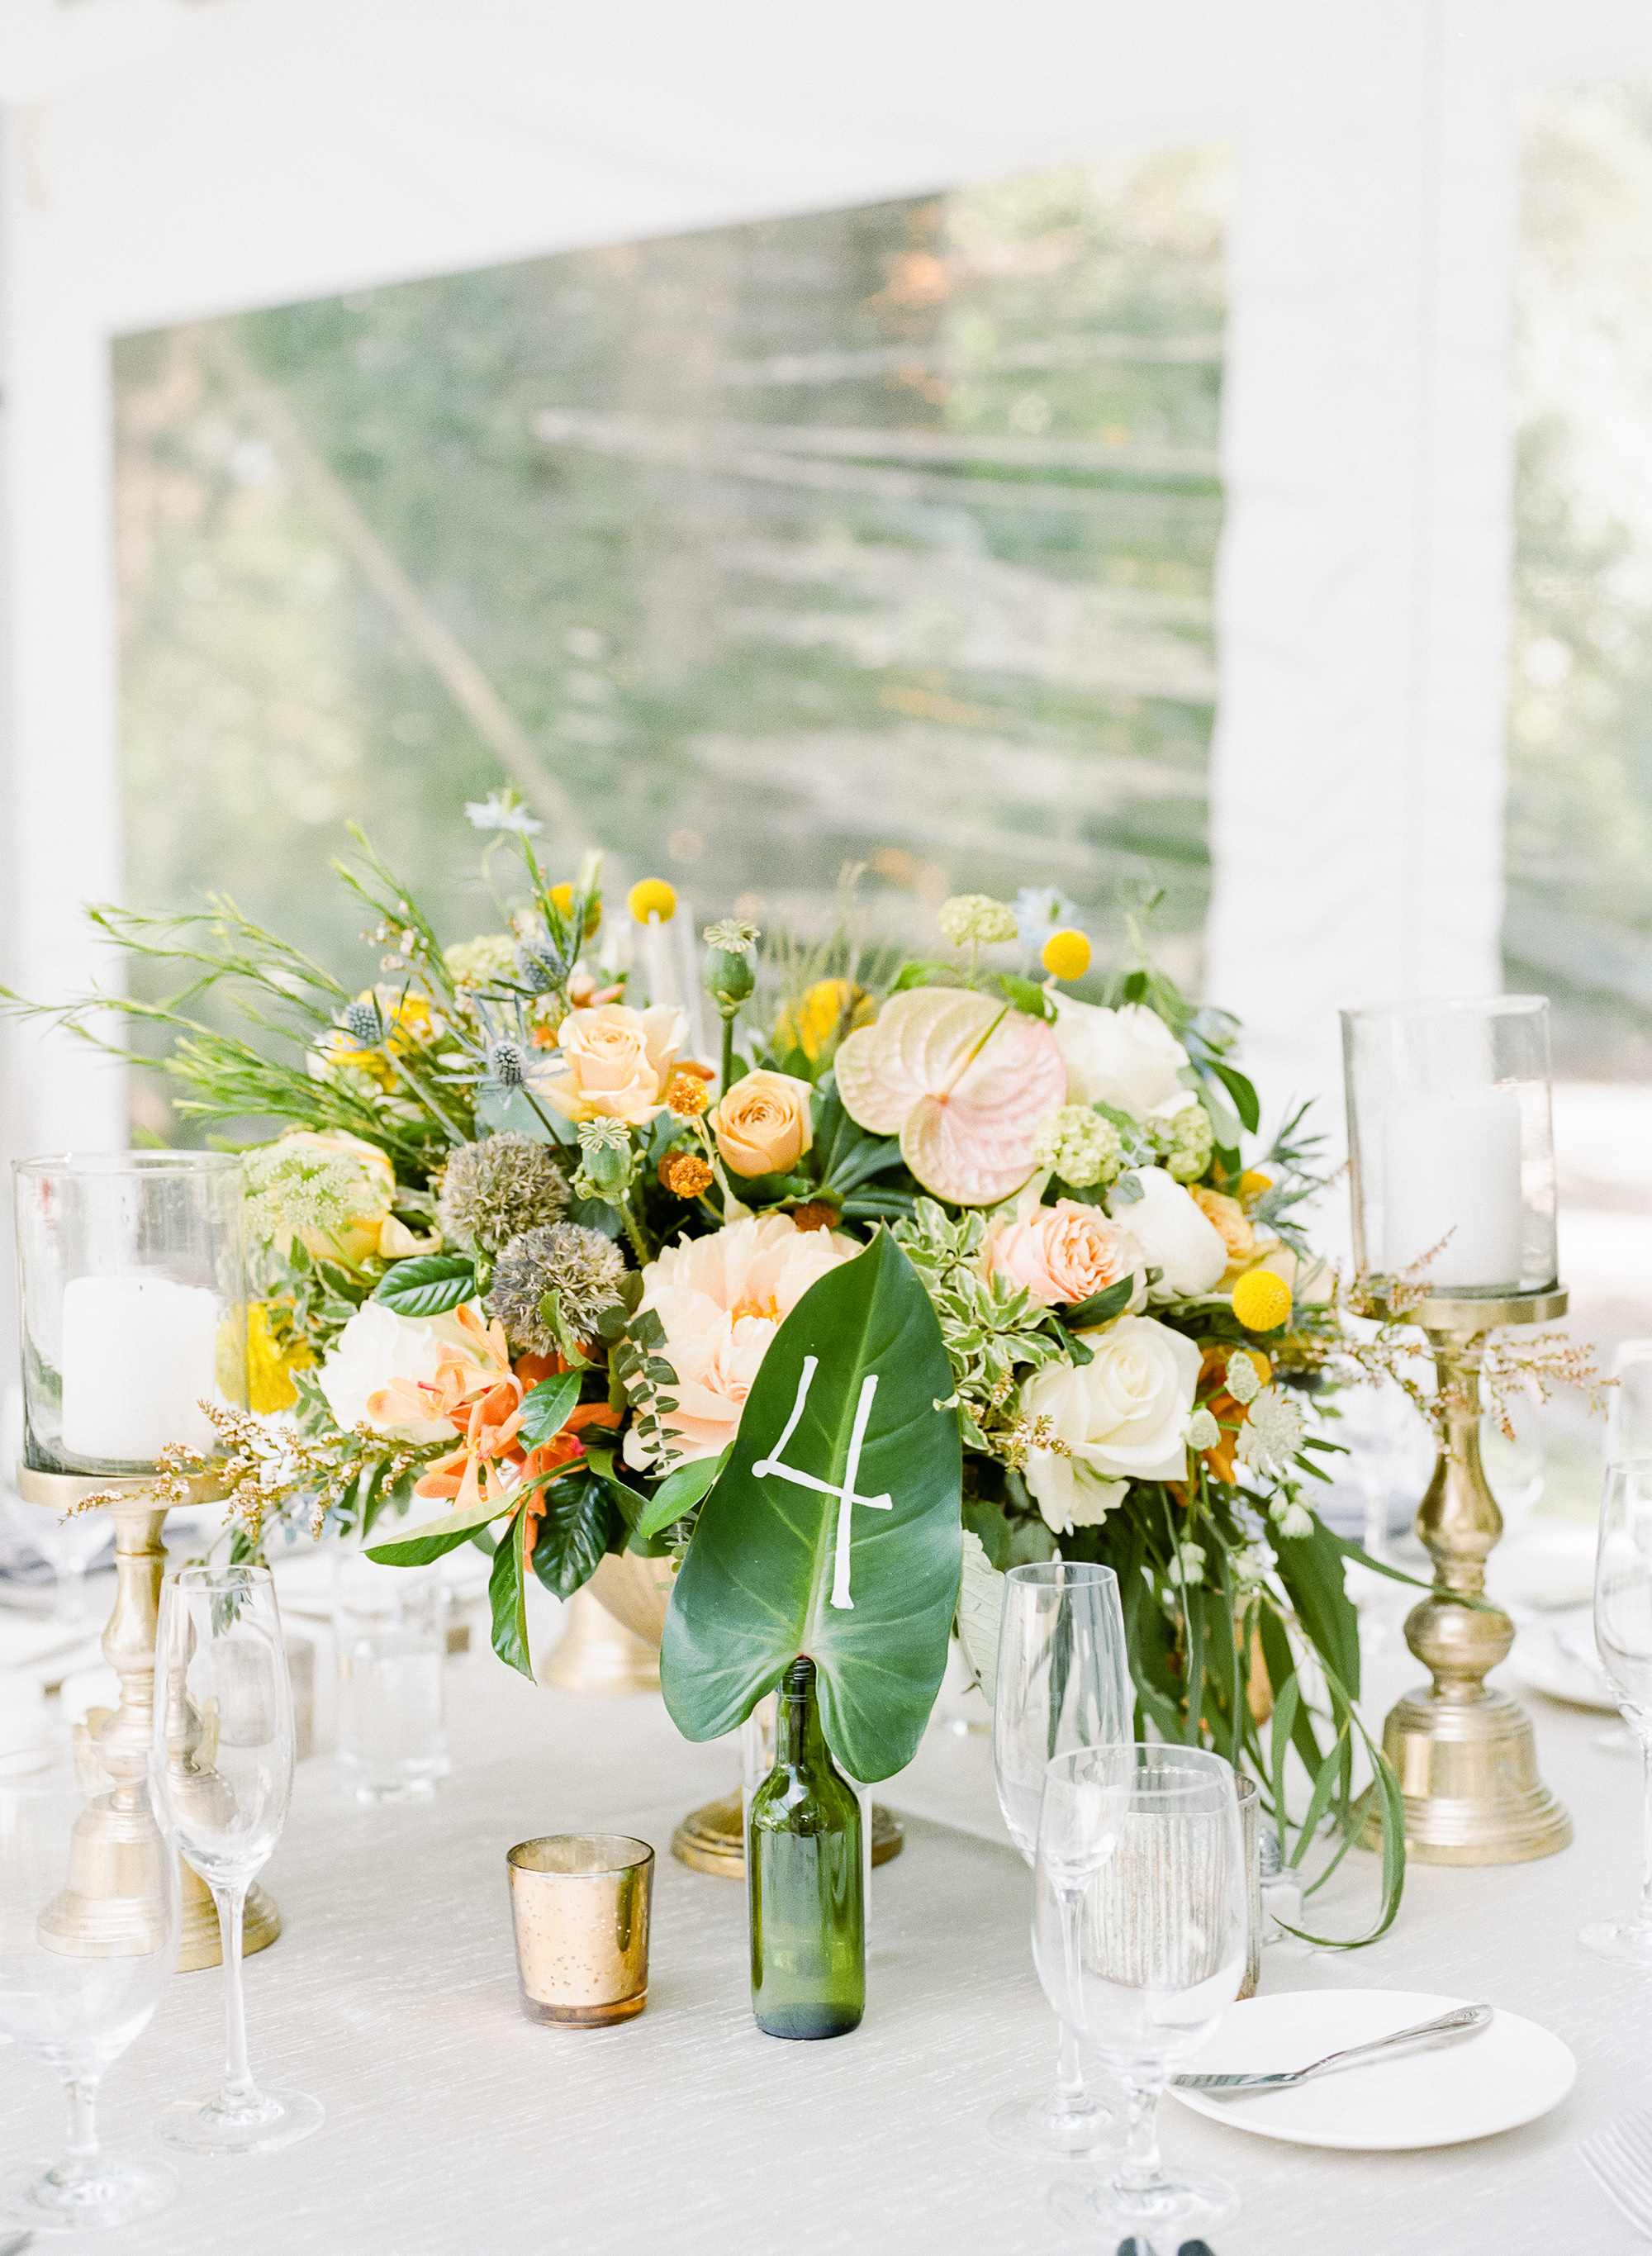 How Much Should We Really Plan to Spend on Each Wedding Centerpiece?